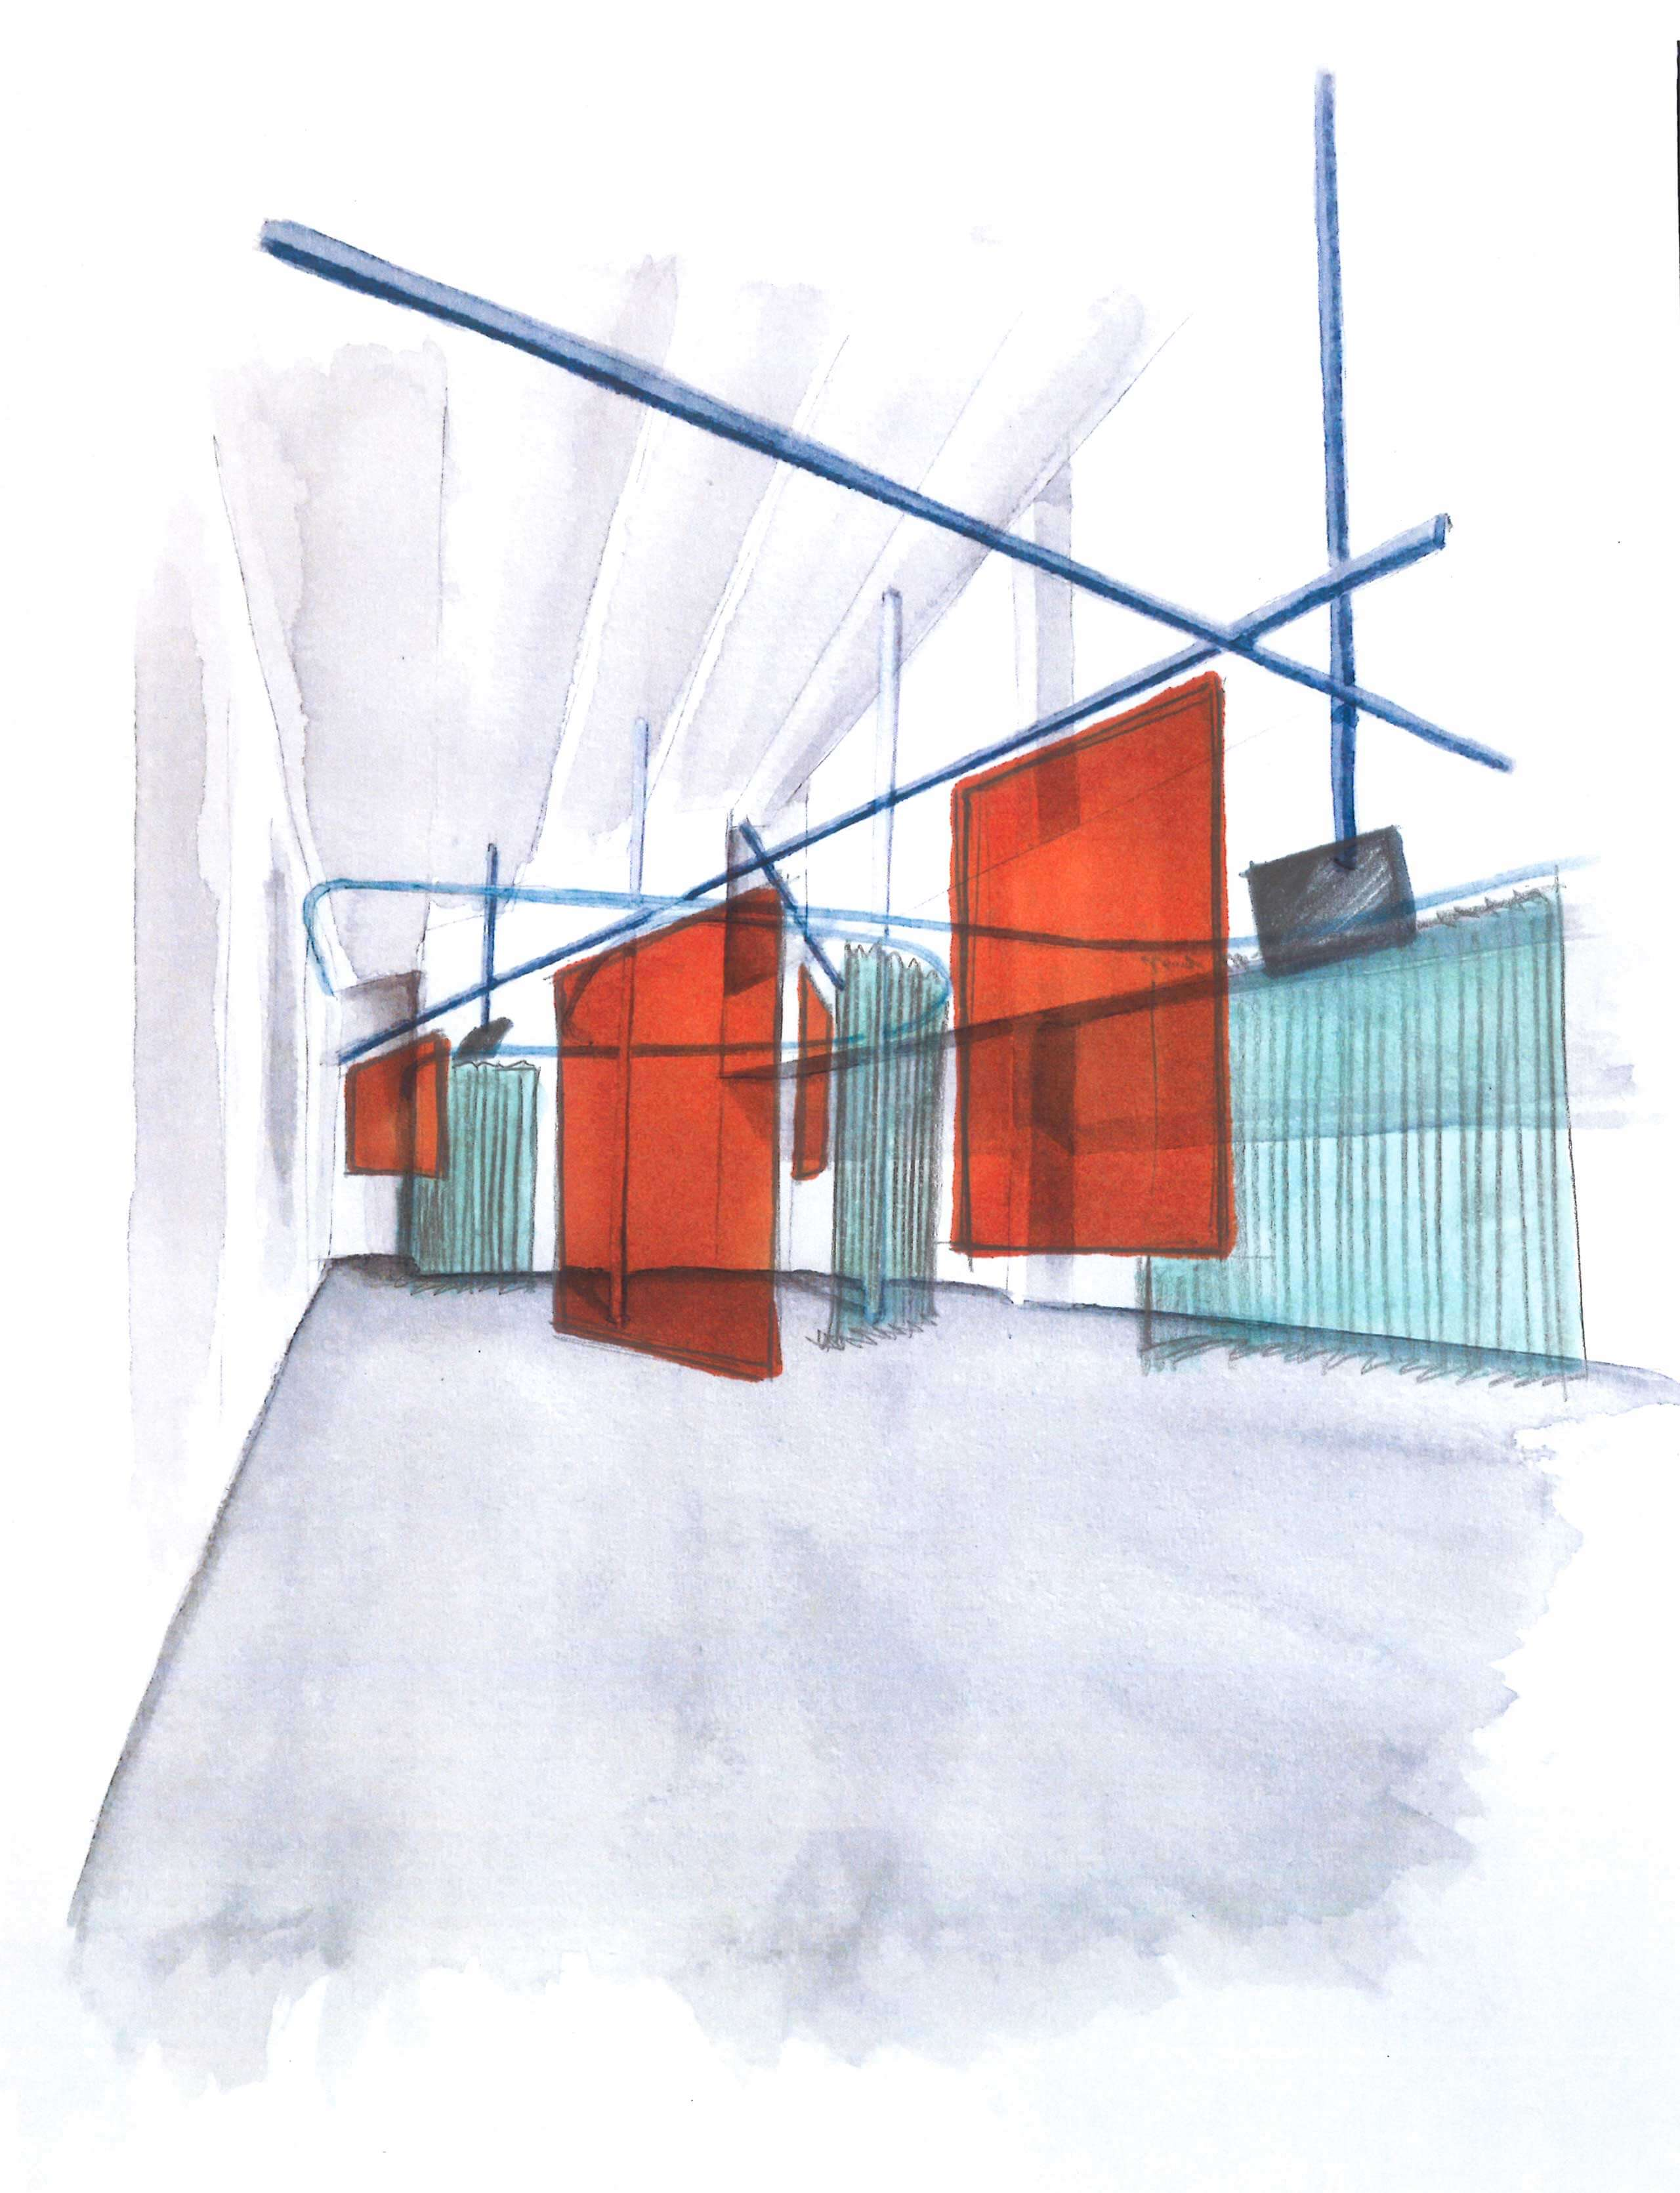 Sketches in blue and red of a wall-hanged light system that holds transparent walls.